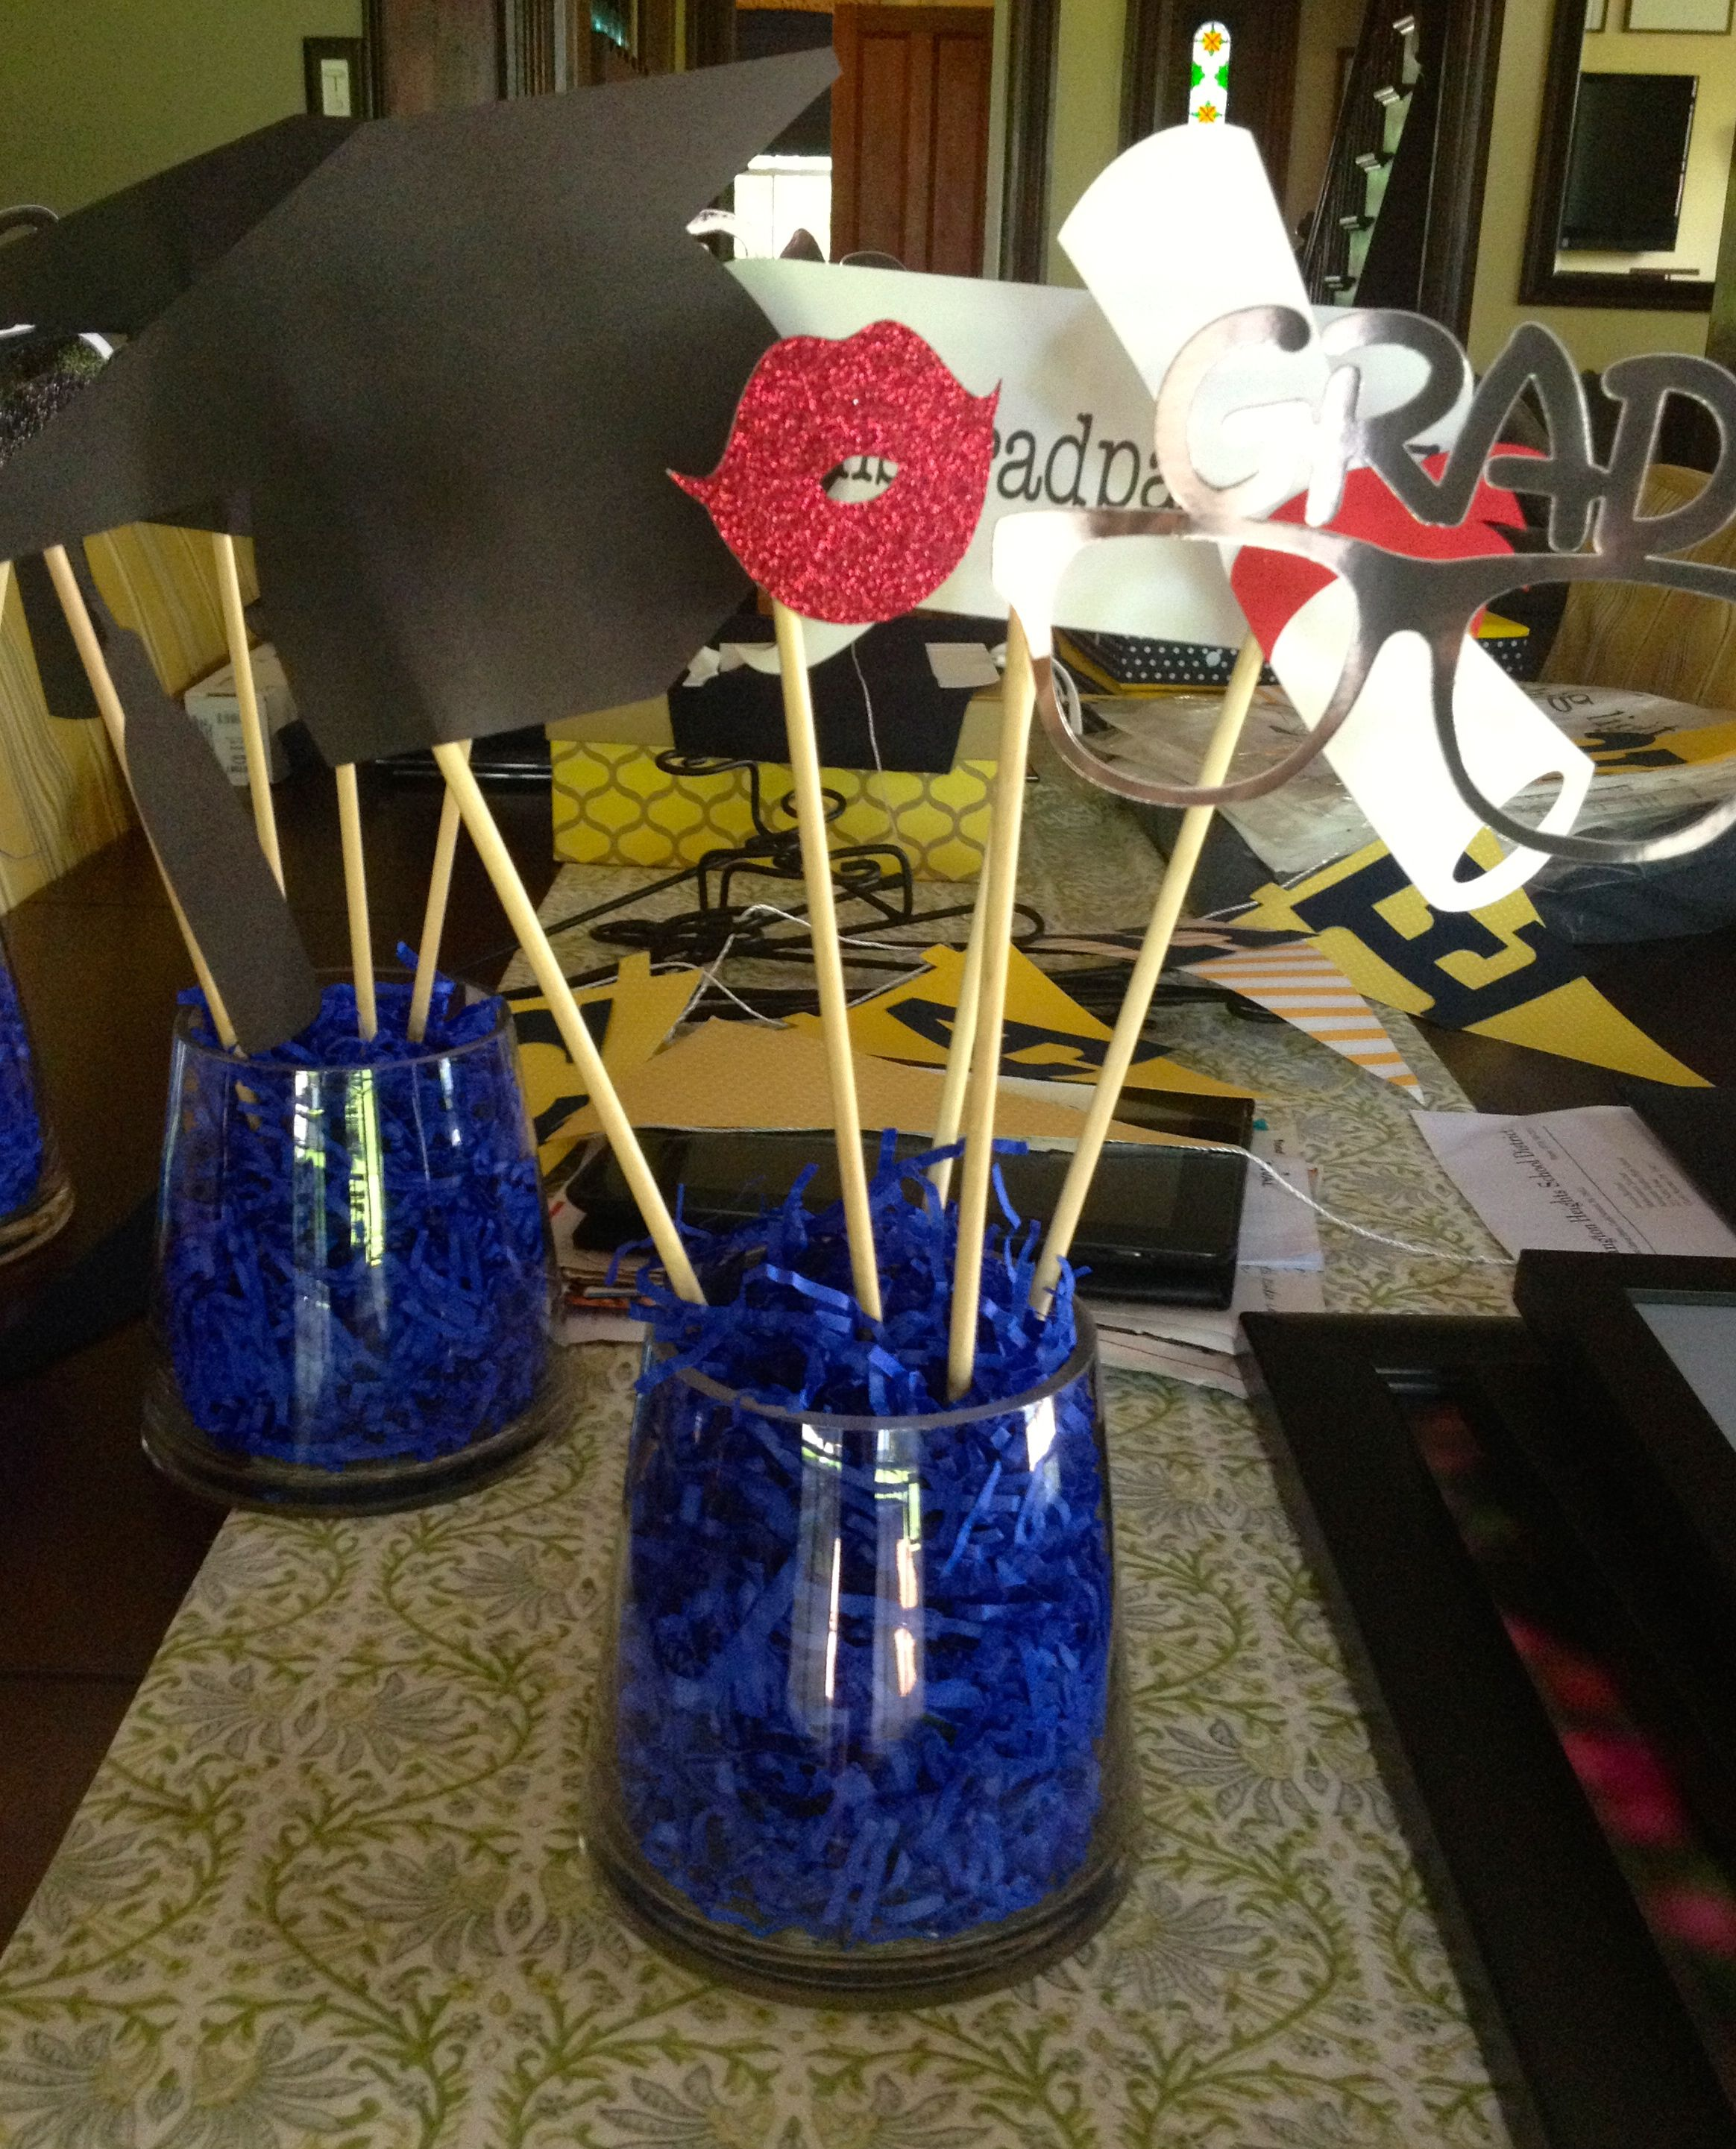 Cute interactive centerpieces for grad party vases